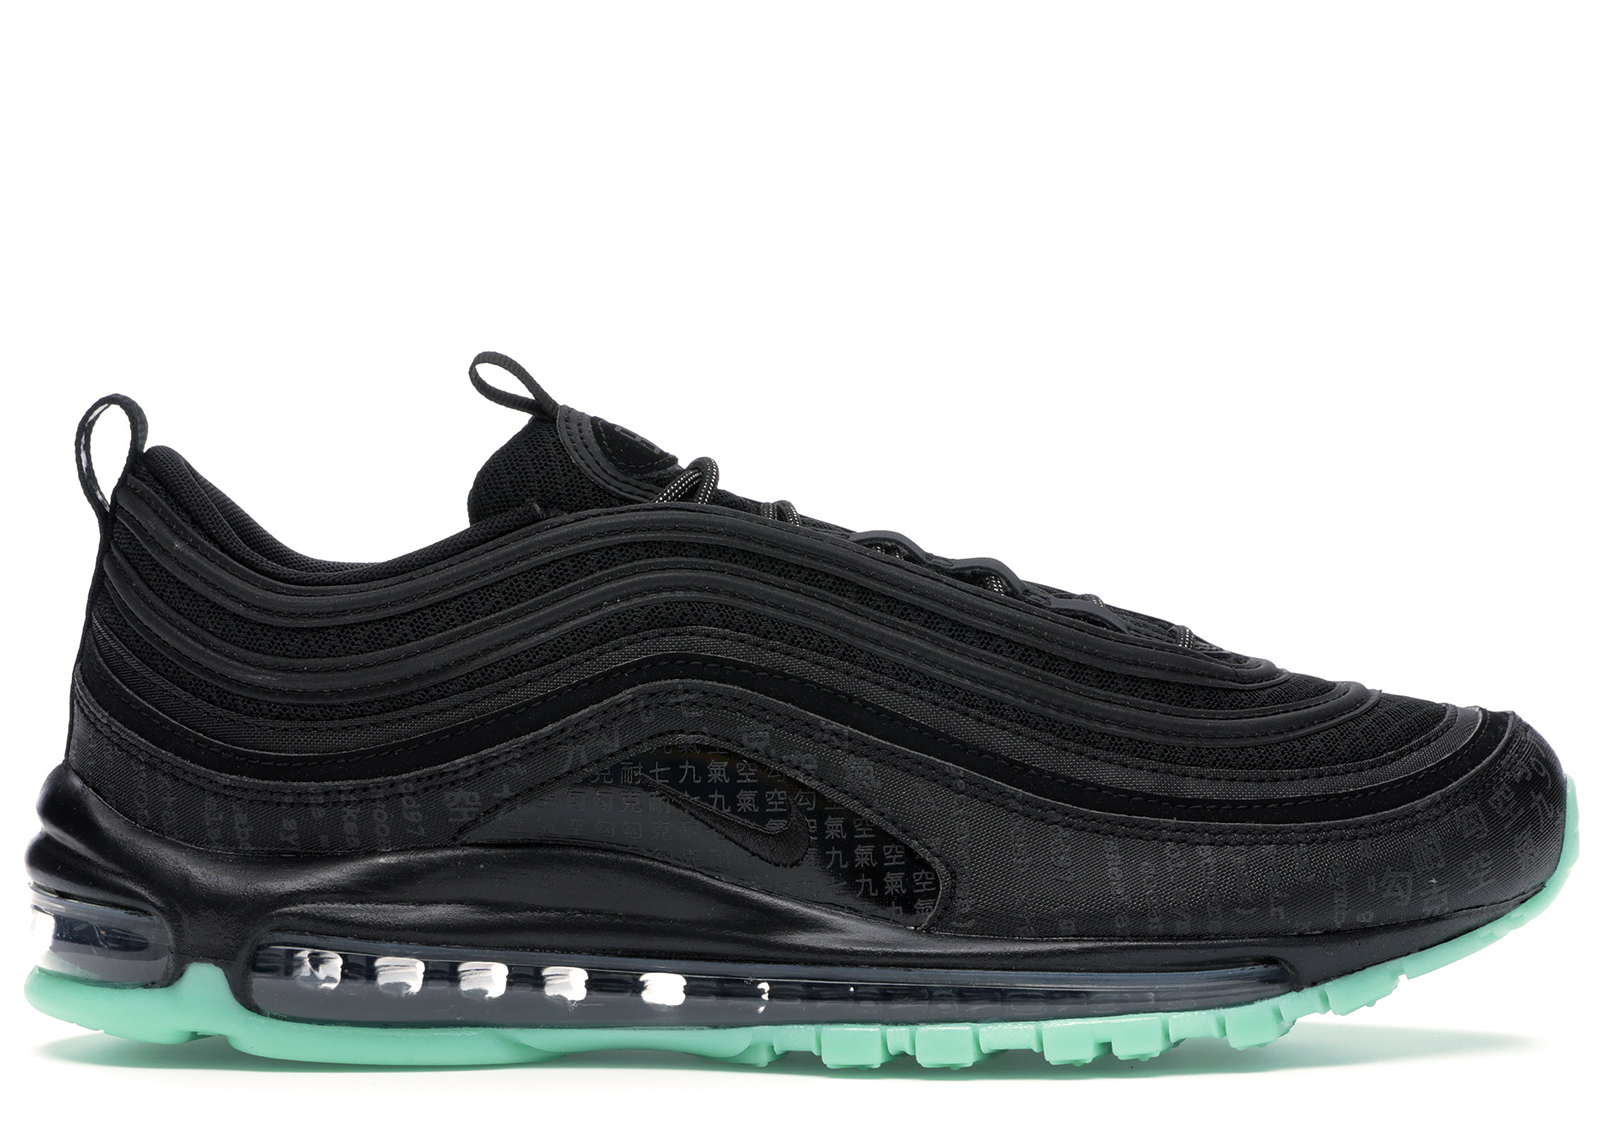 Buy Nike Air Max 97 Shoes & Deadstock Sneakers